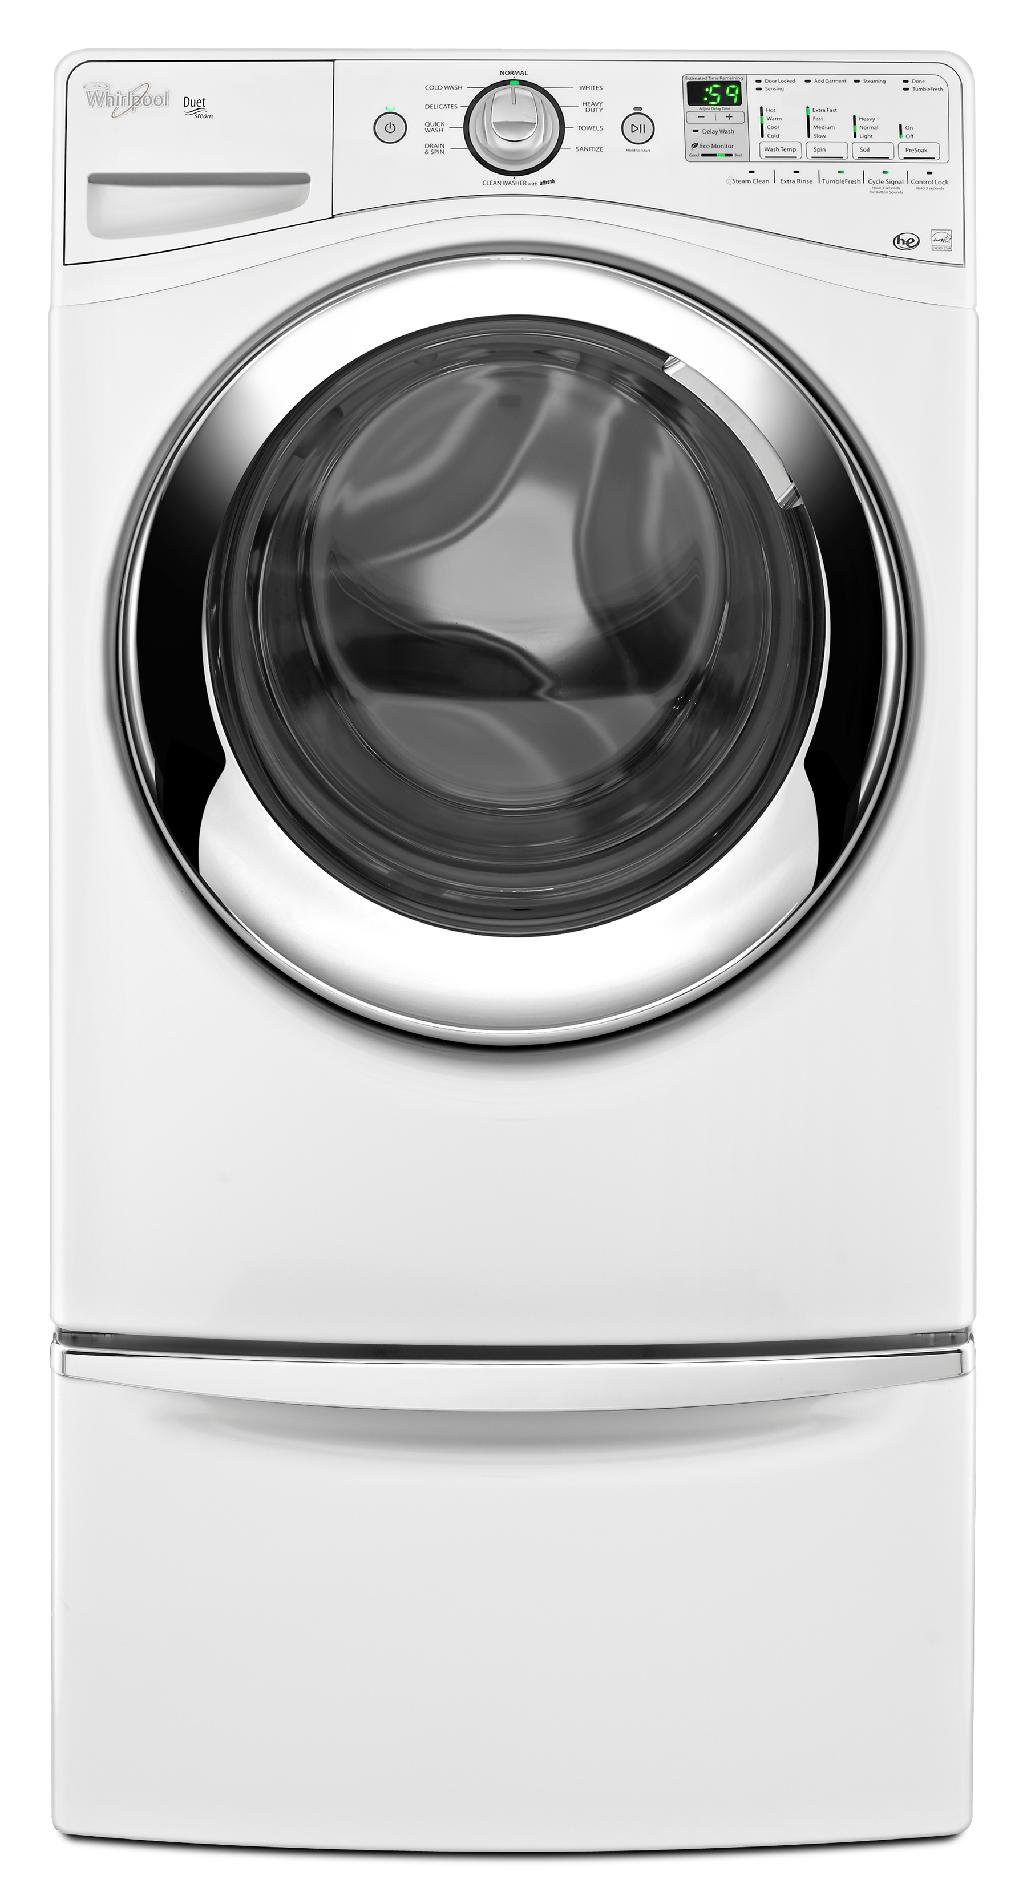 Whirlpool 4.1 cu. ft. Front-load Washer w/ Deep Clean Steam - White